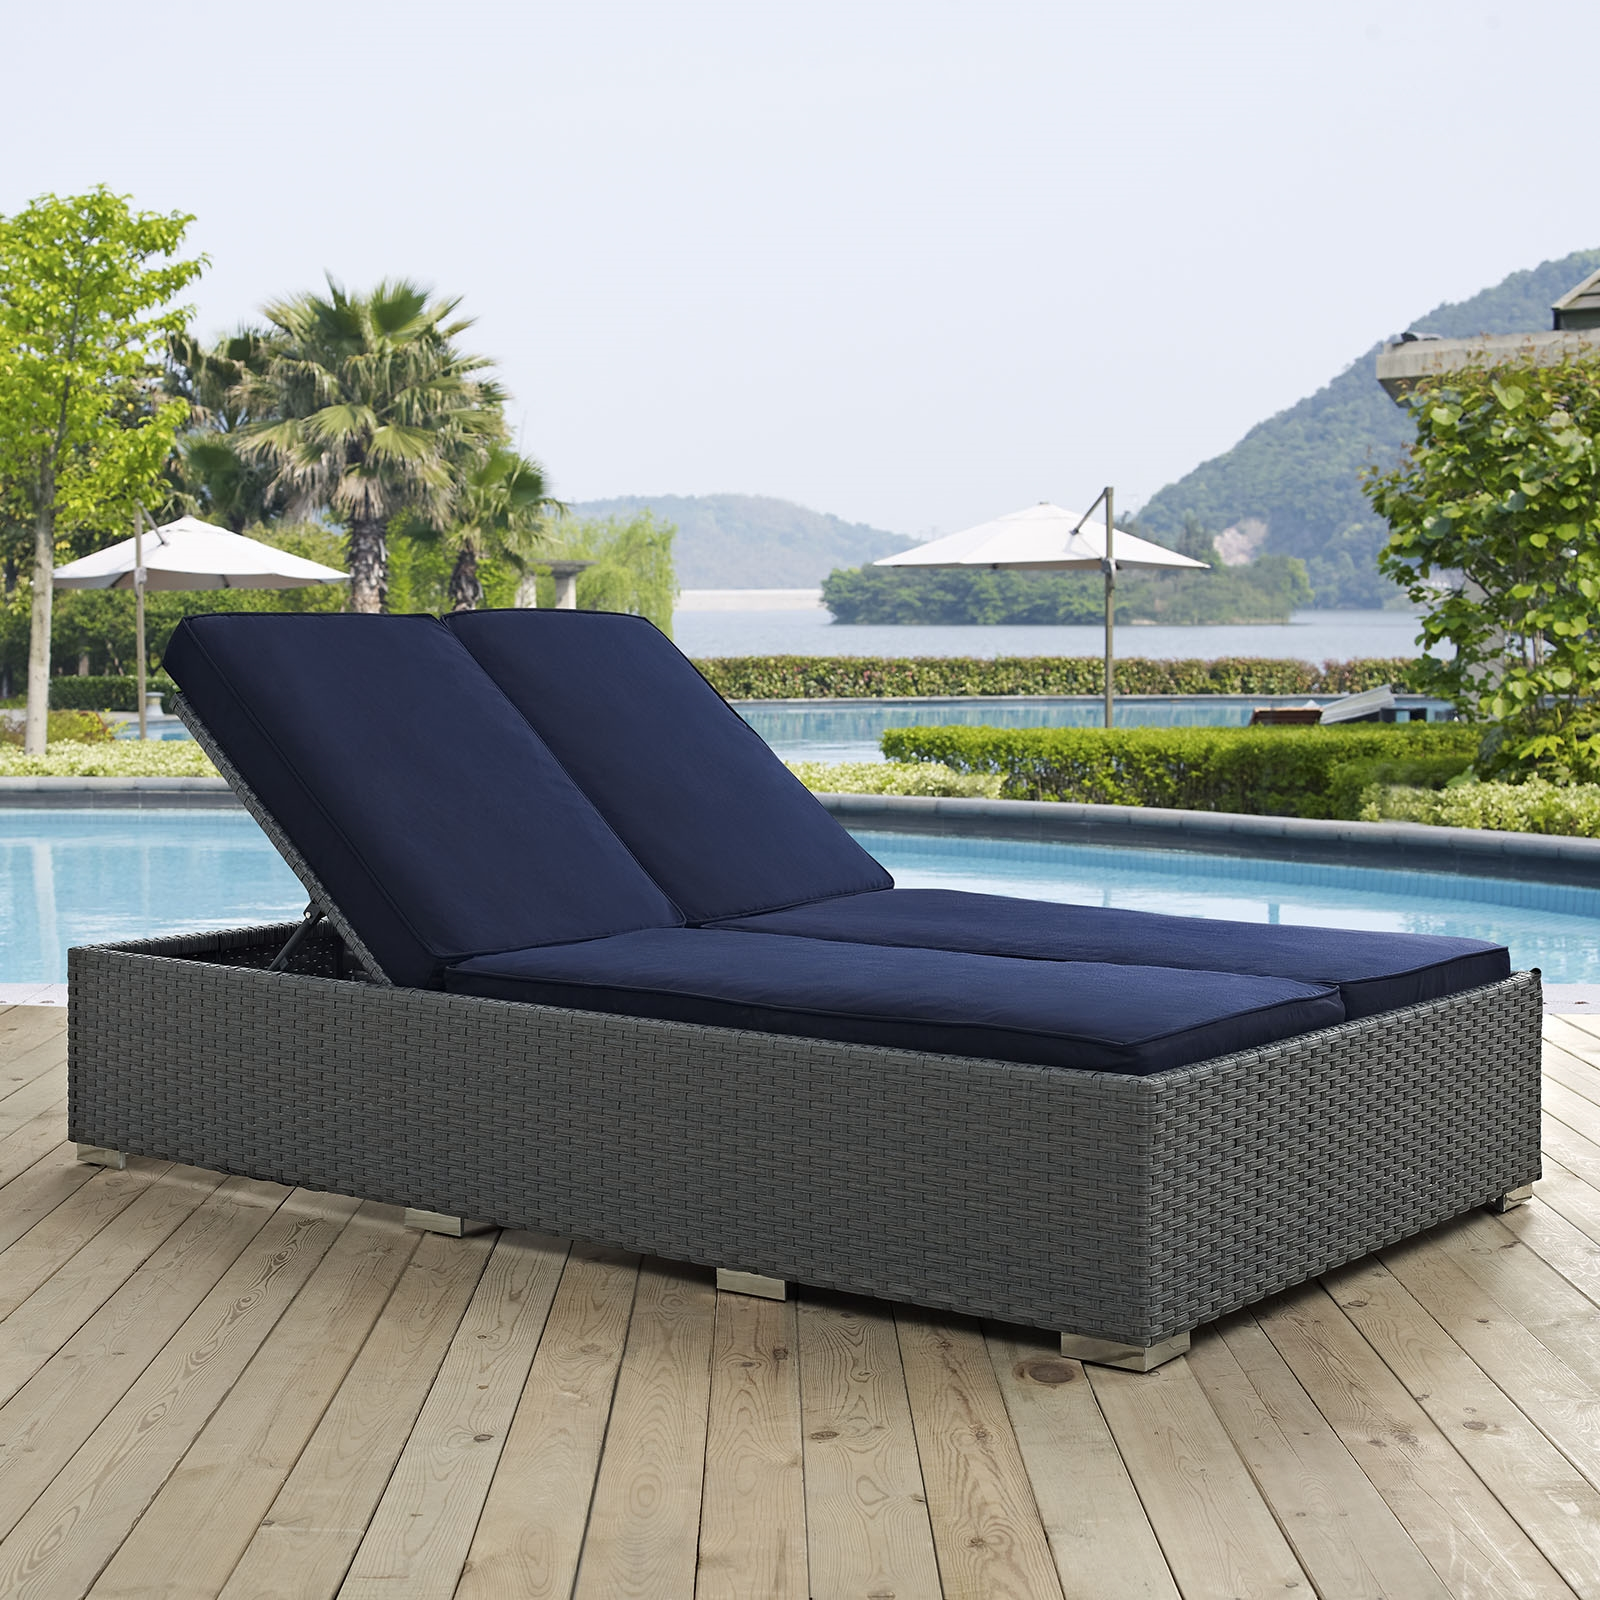 Sojourn Outdoor Patio Sunbrella® Double Chaise in Chocolate Navy